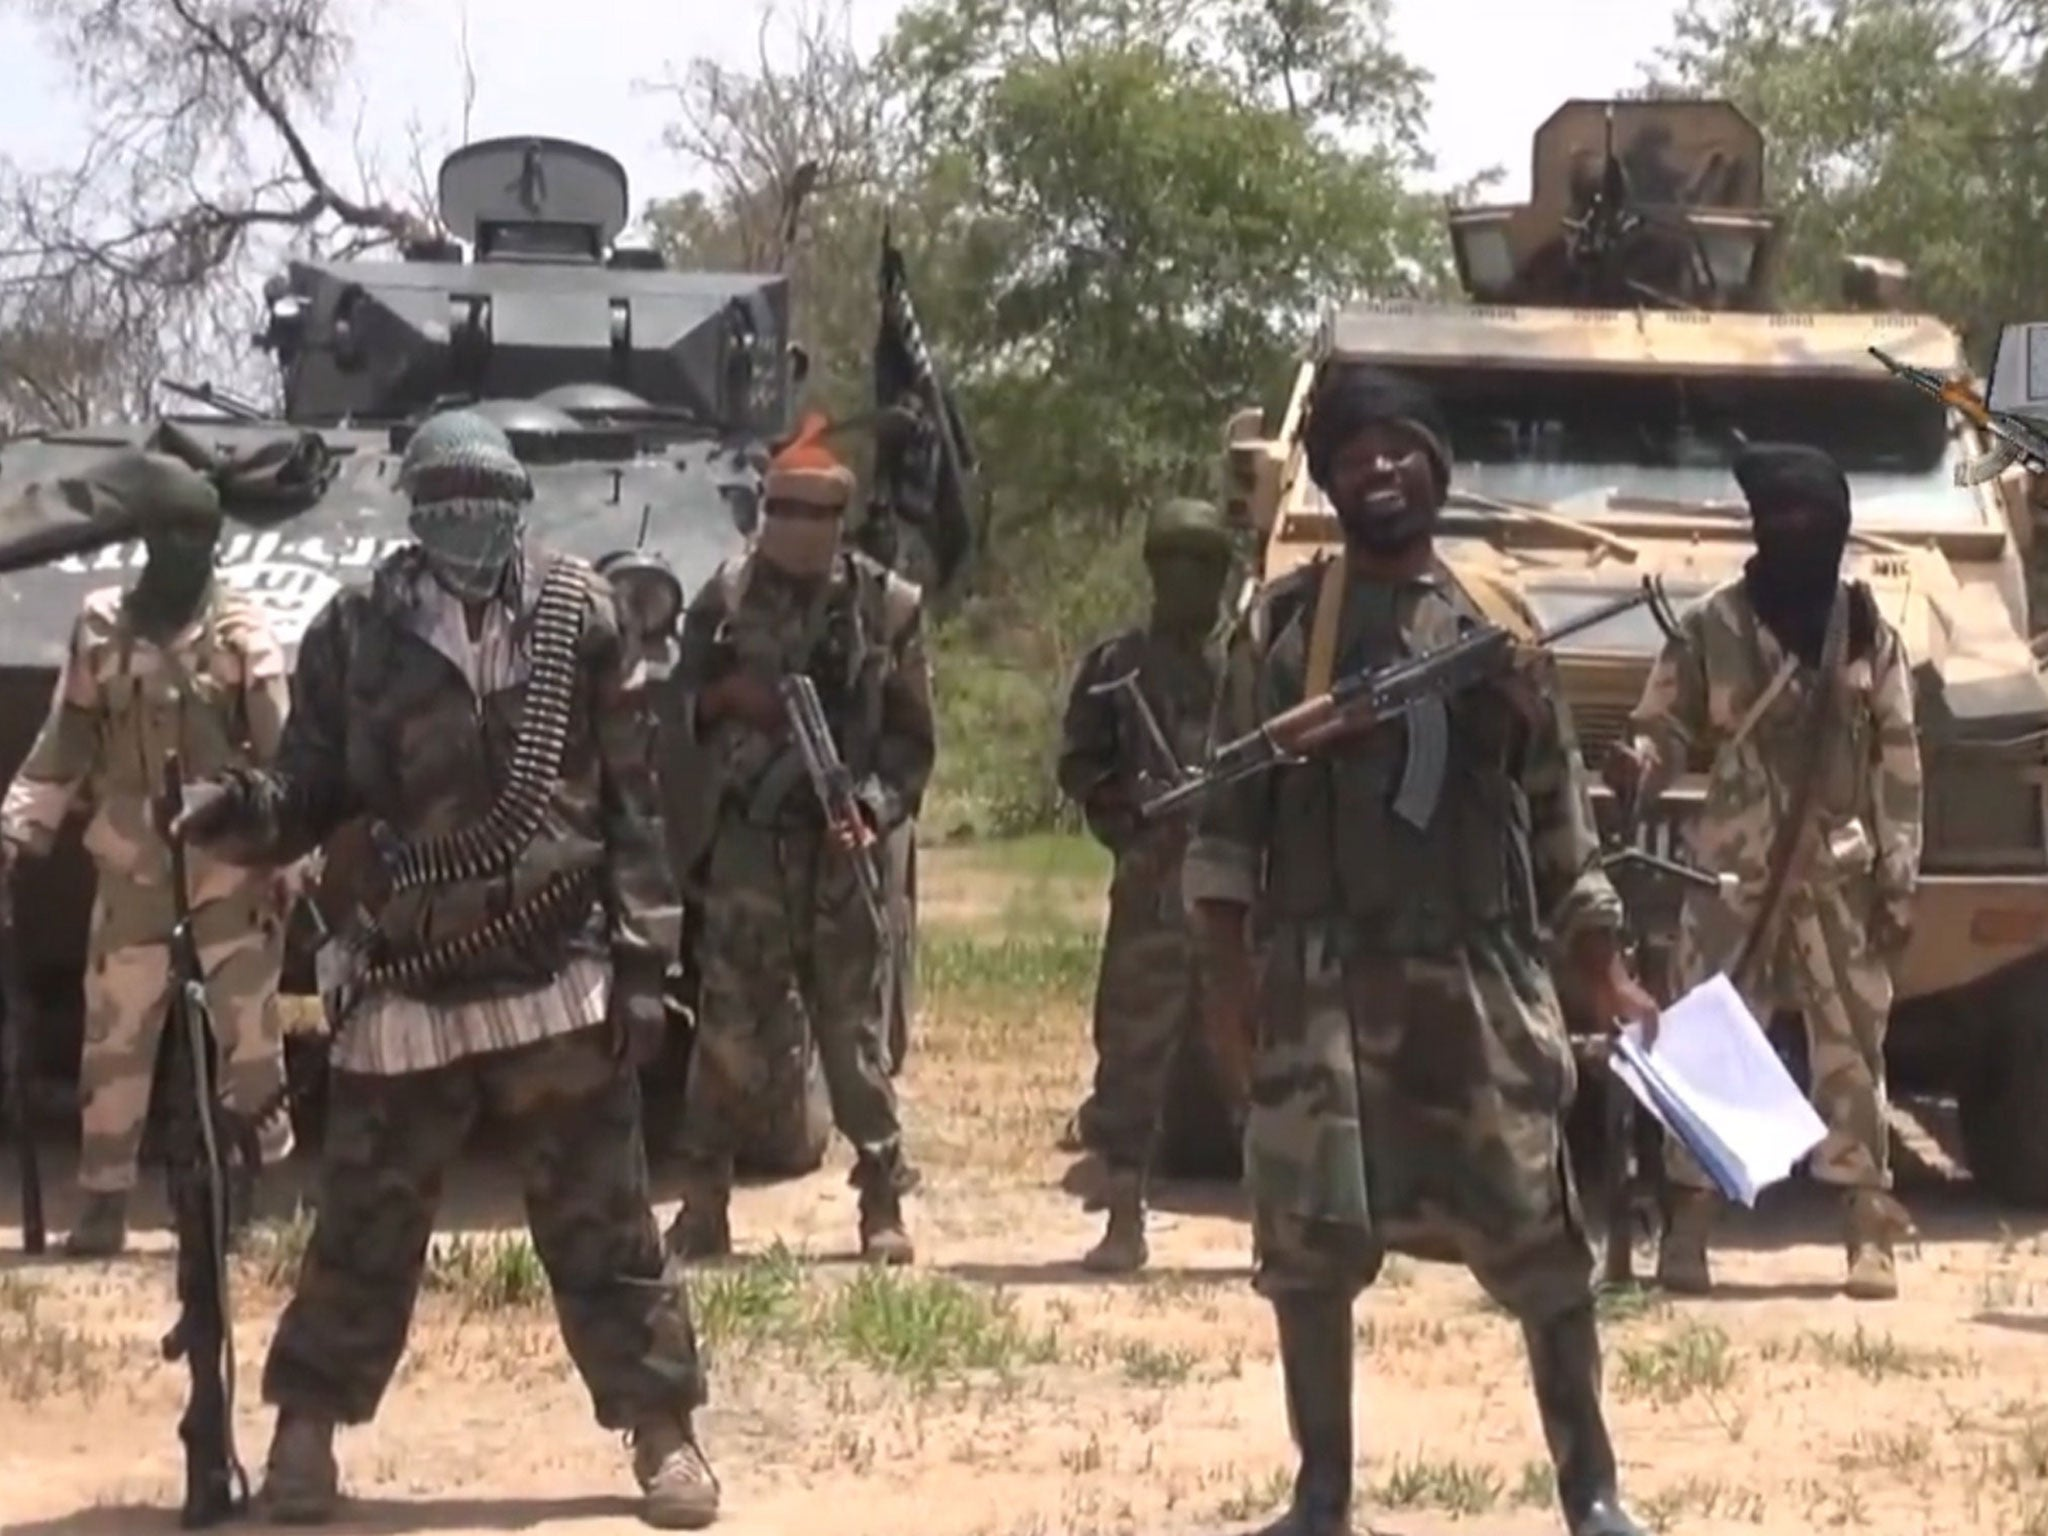 Boko Haram closes in on its dream of an African caliphate – and Isis gives its blessing, and advice on strategy